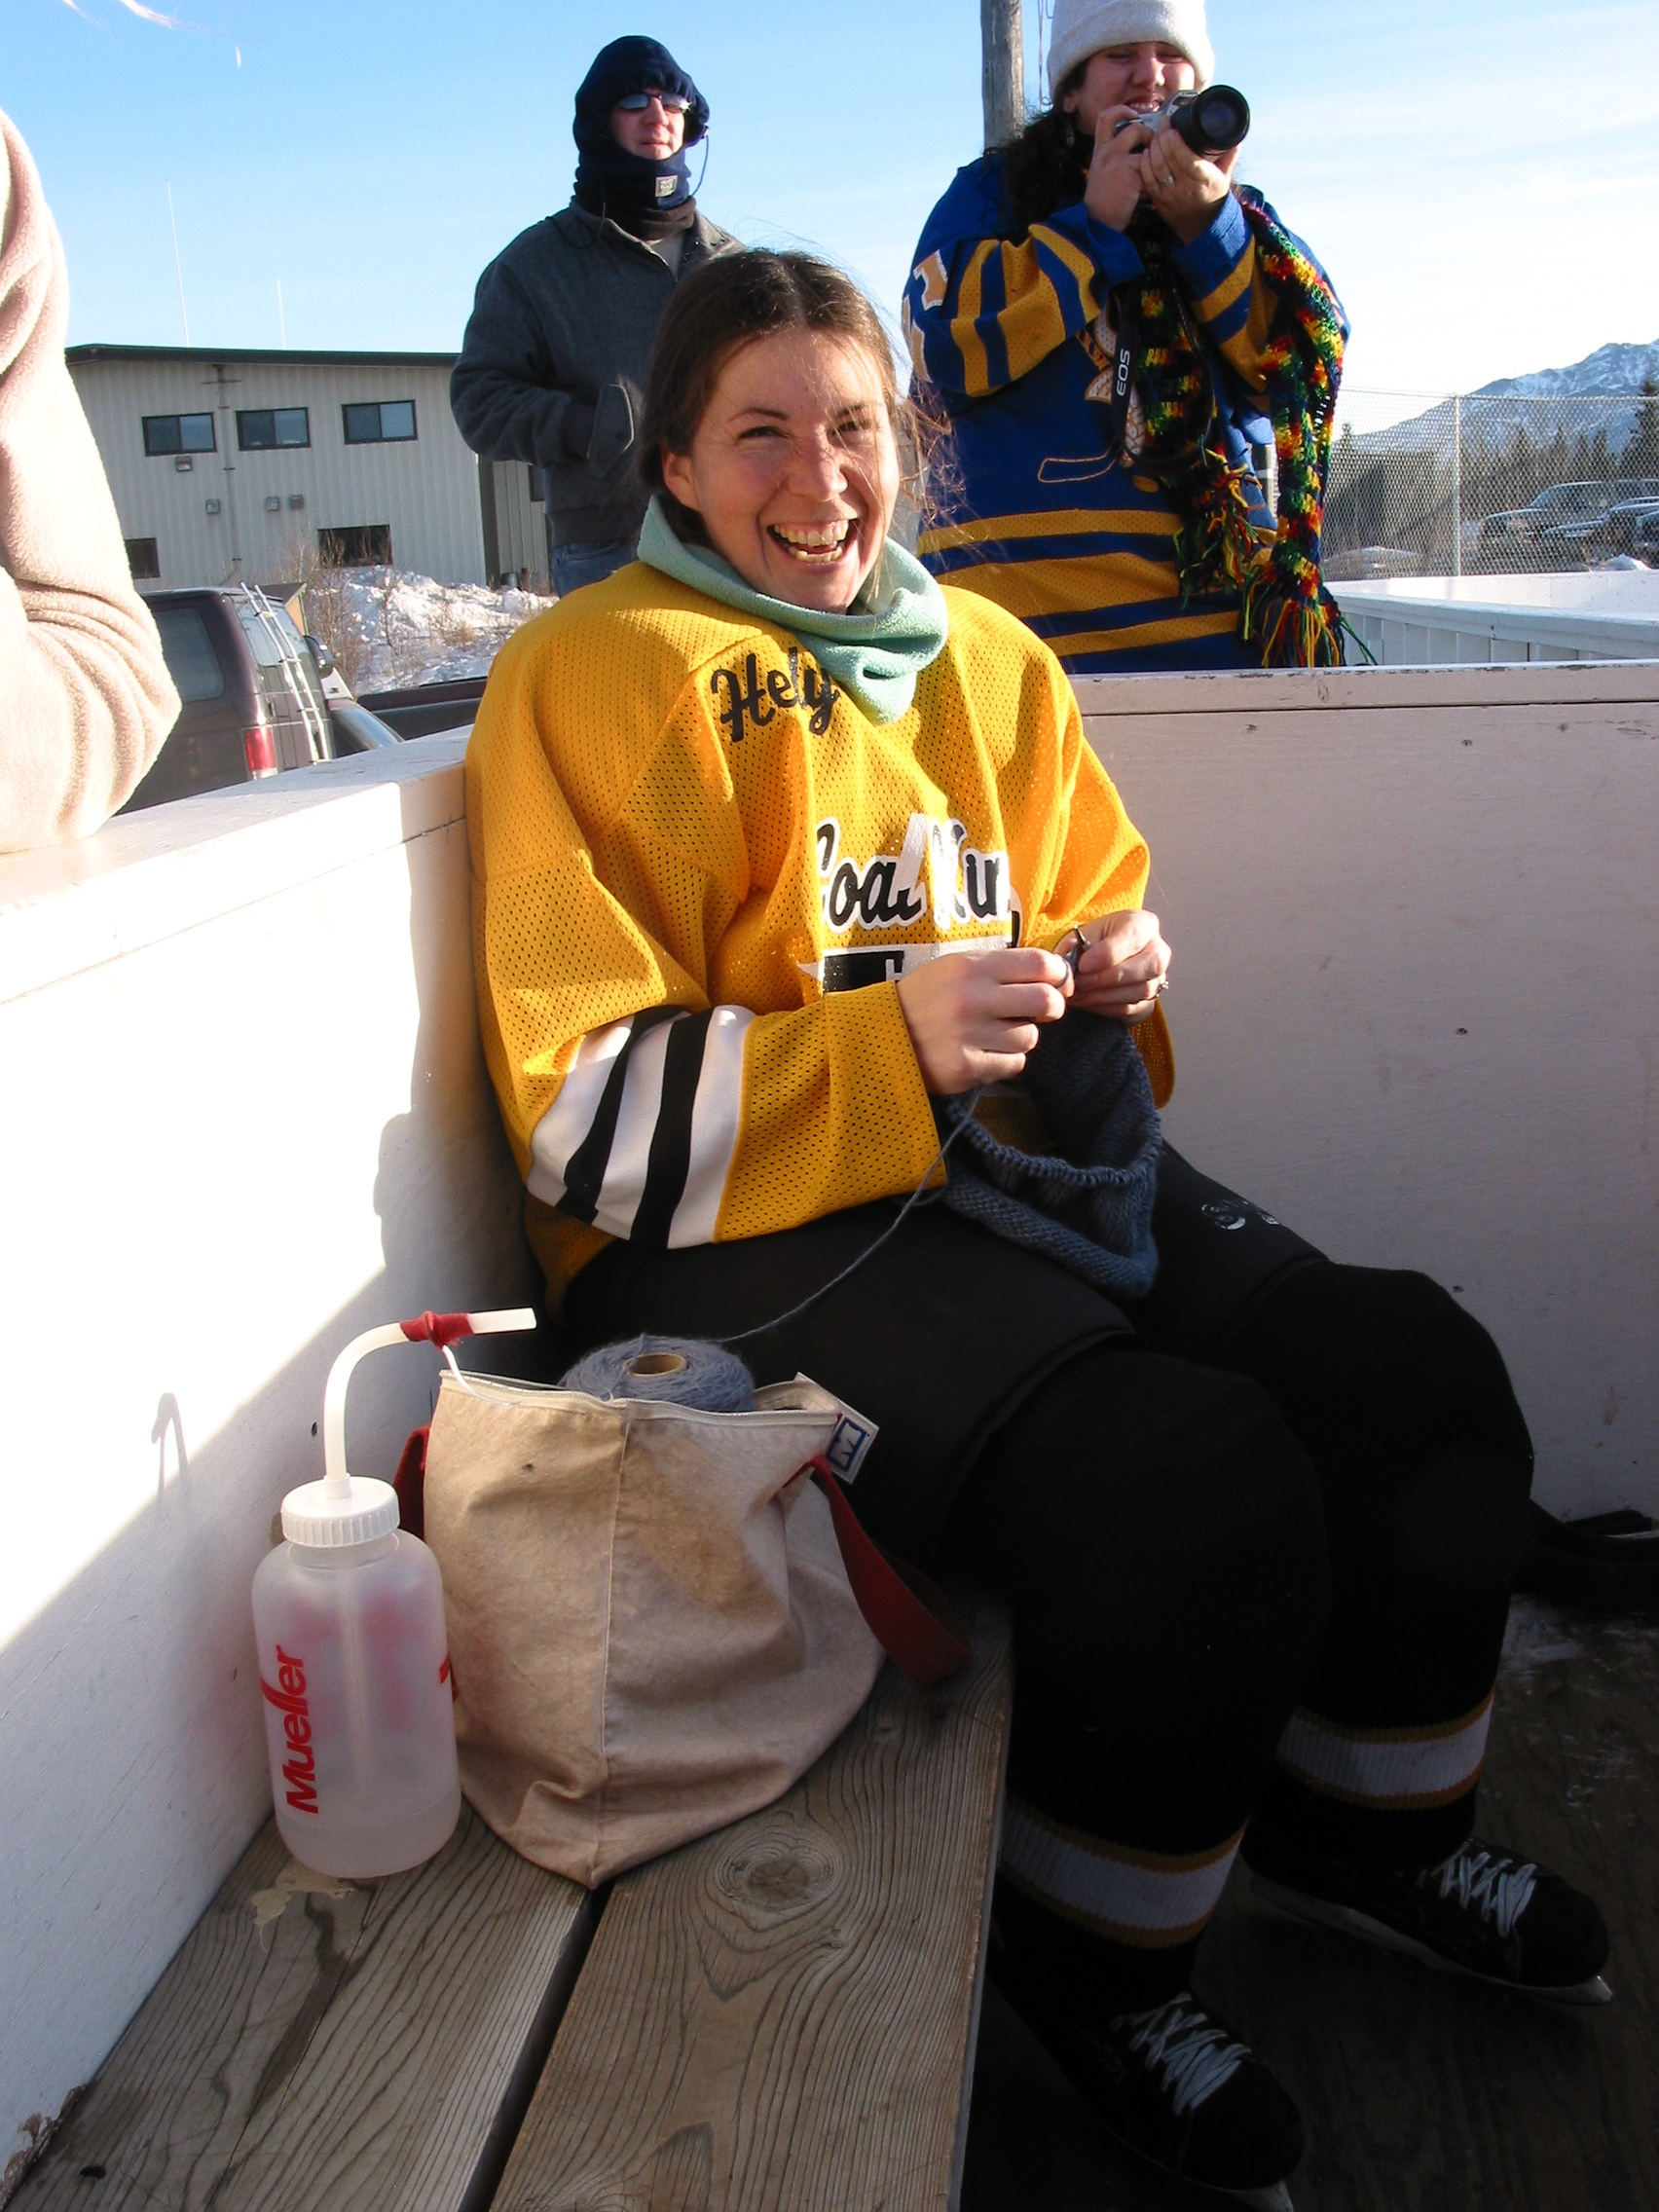 Knitting hats between hockey games, Healy, Alaska, 2003.